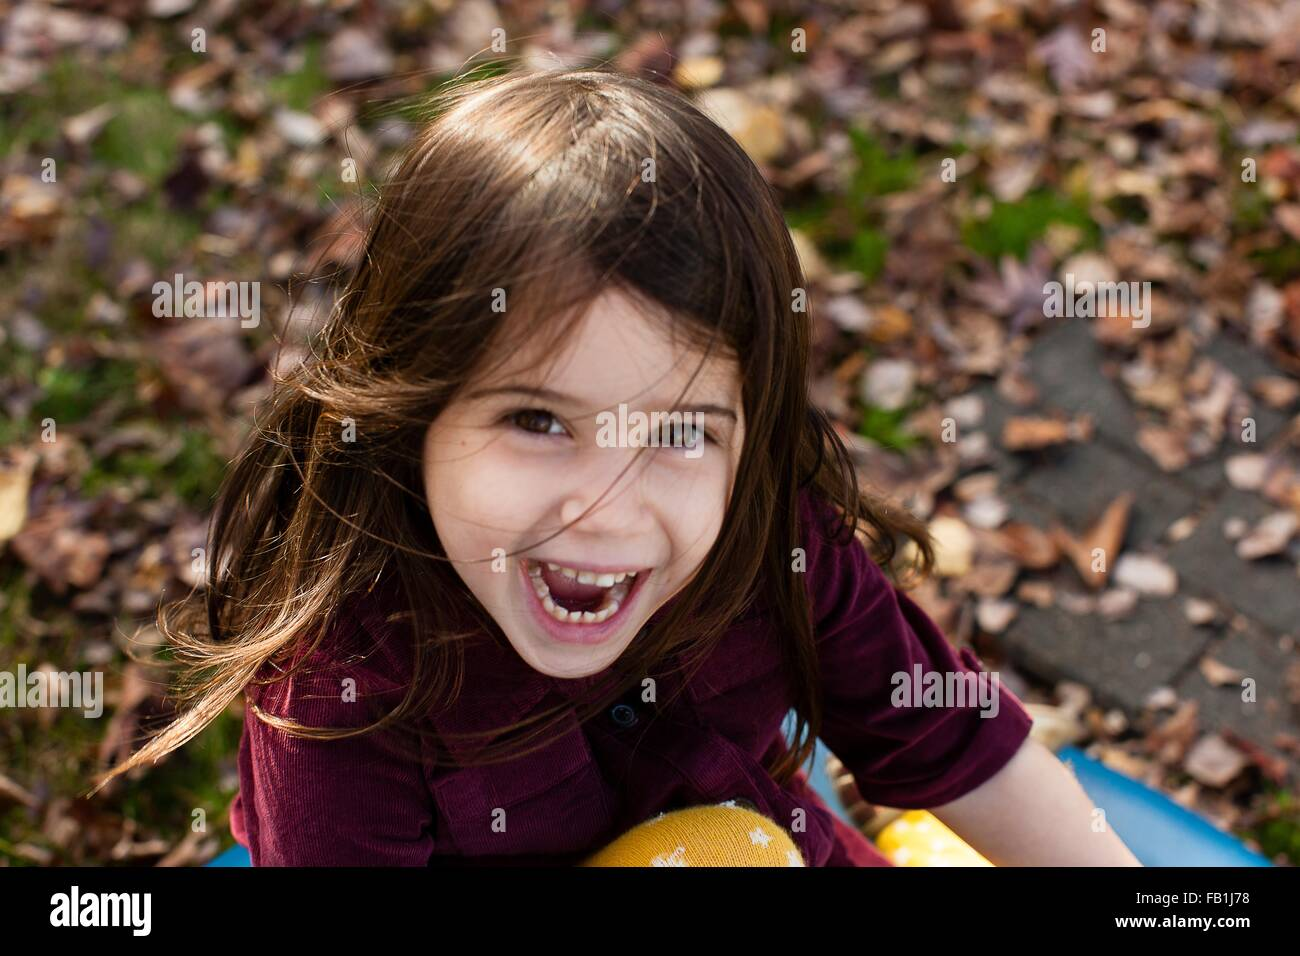 High angle portrait of young girl among autumn leaves looking at camera open mouthed smiling - Stock Image